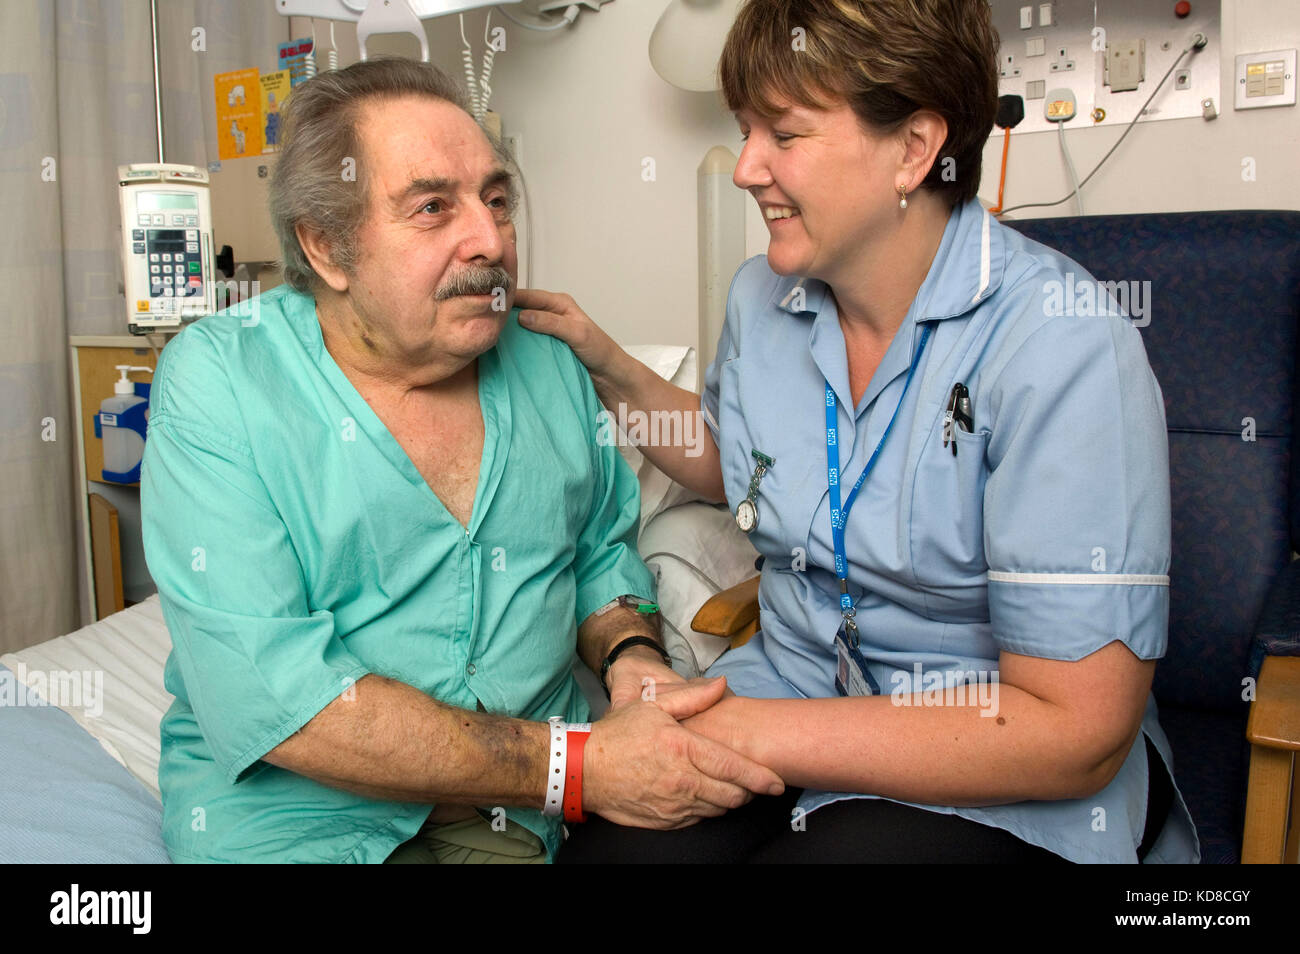 Claire Thomas with Bill Hardingham, who she assisted when he collapsed outside her home, together in the Royal United - Stock Image